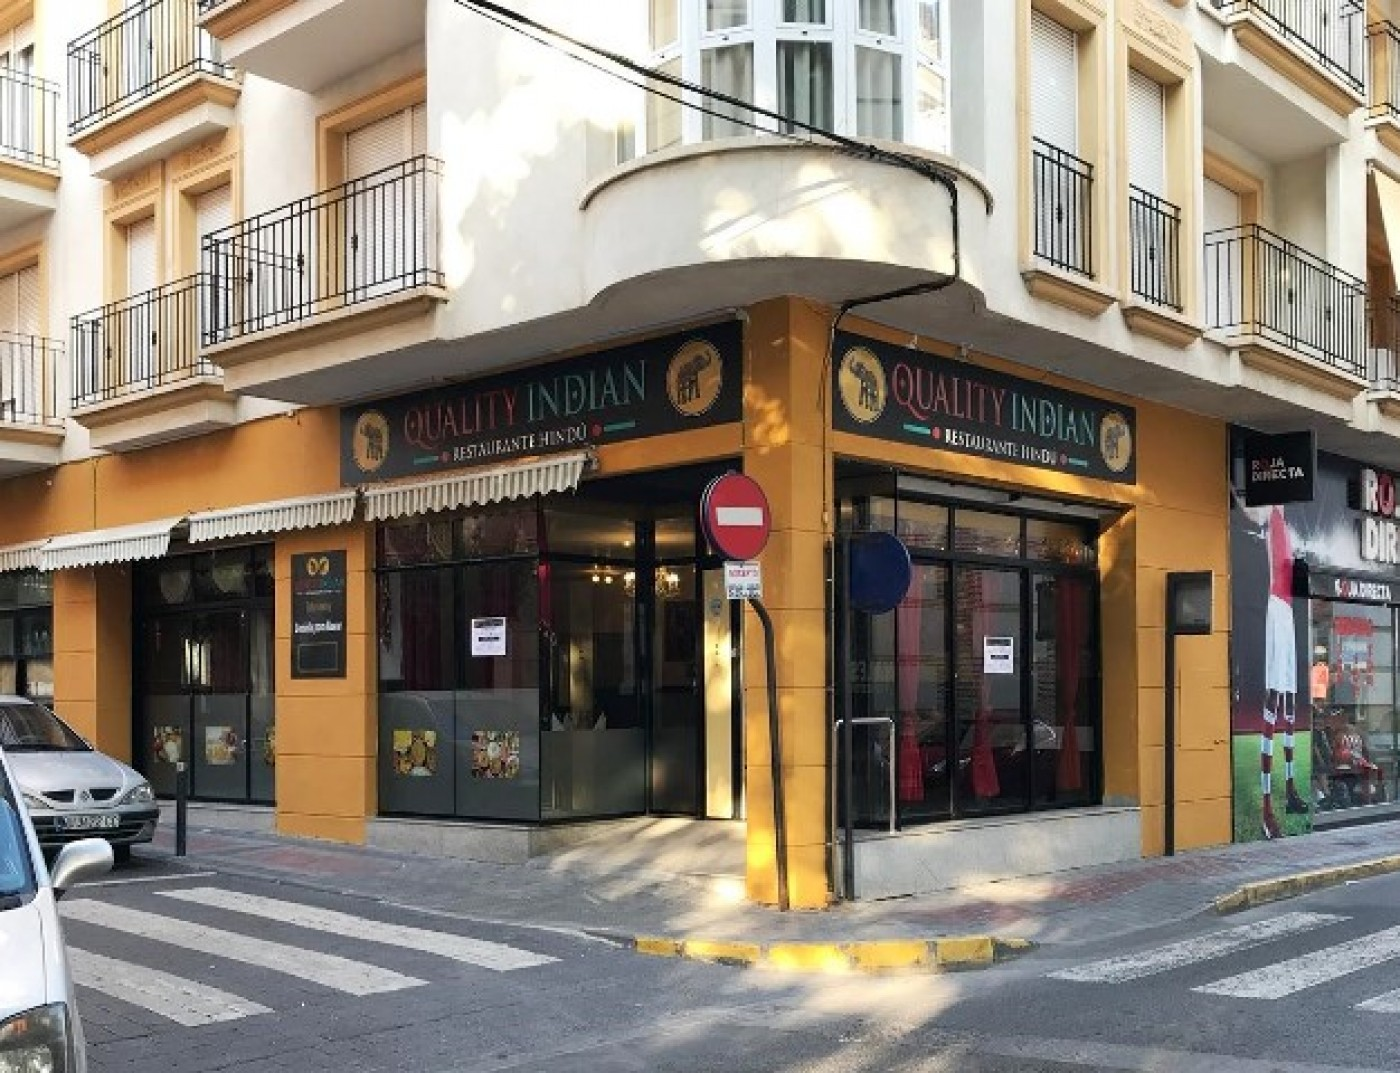 Quality Indian Restaurant Aguilas